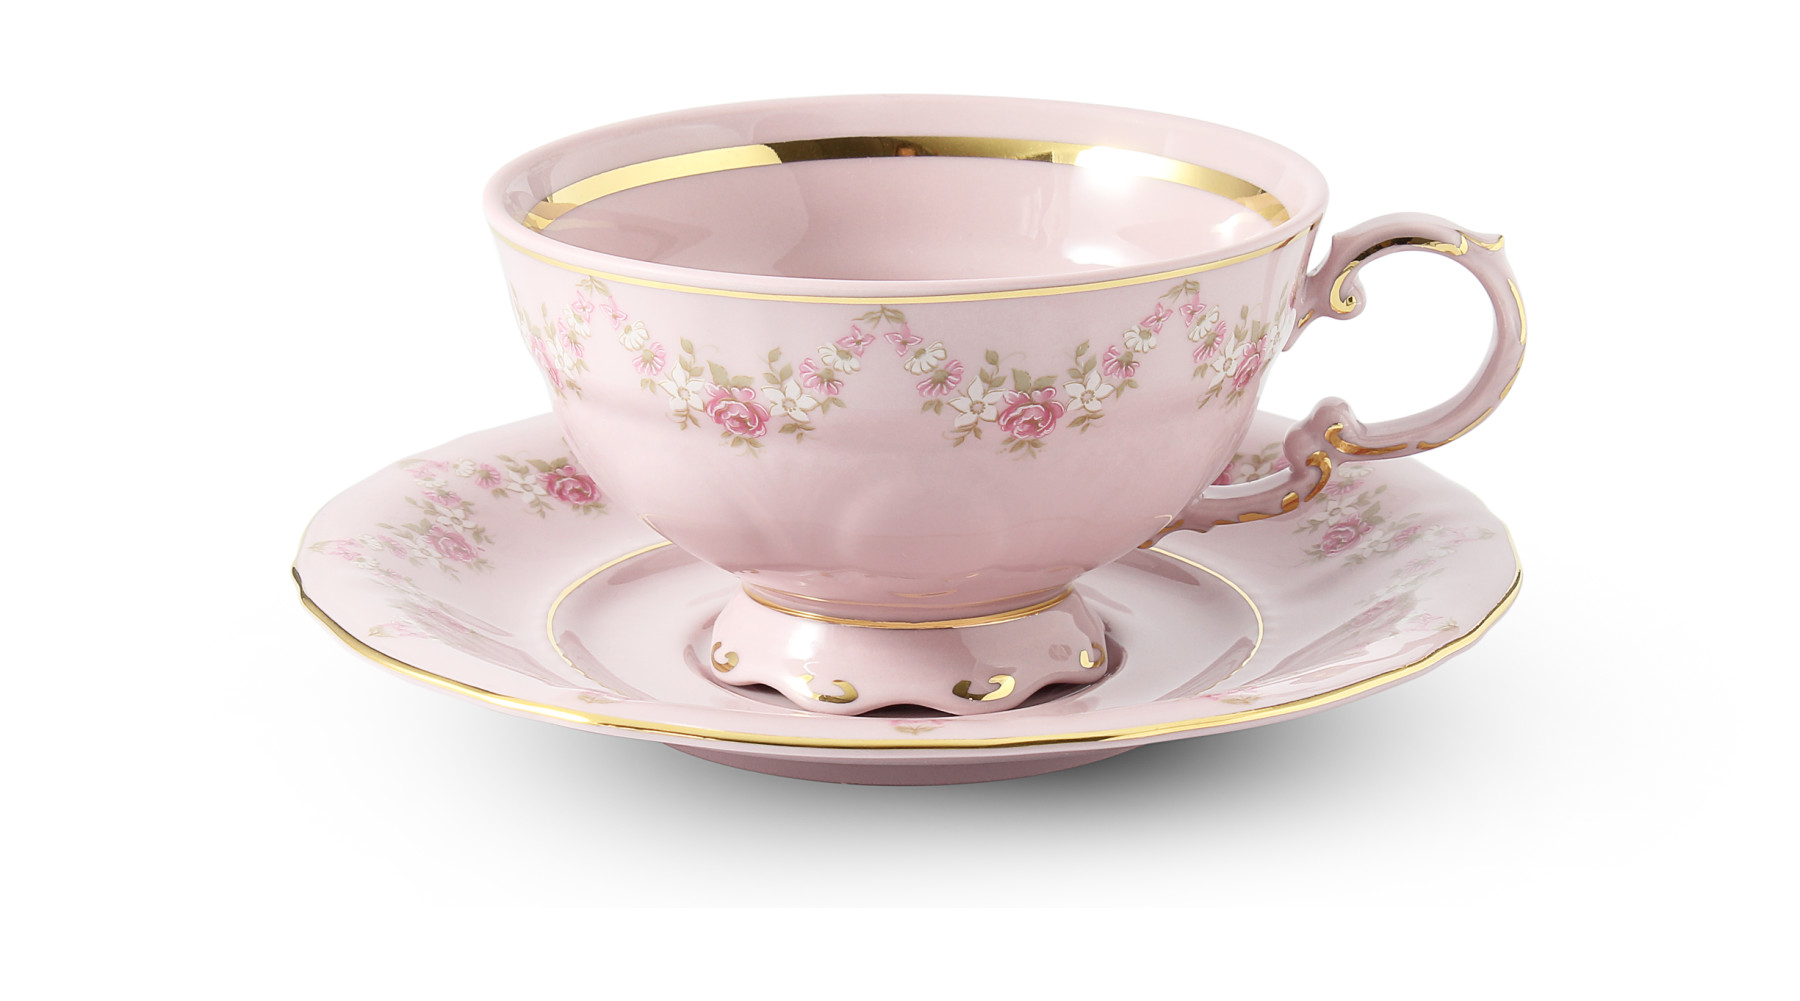 Cup and saucer 0.20 l Rose garland rose porcelain